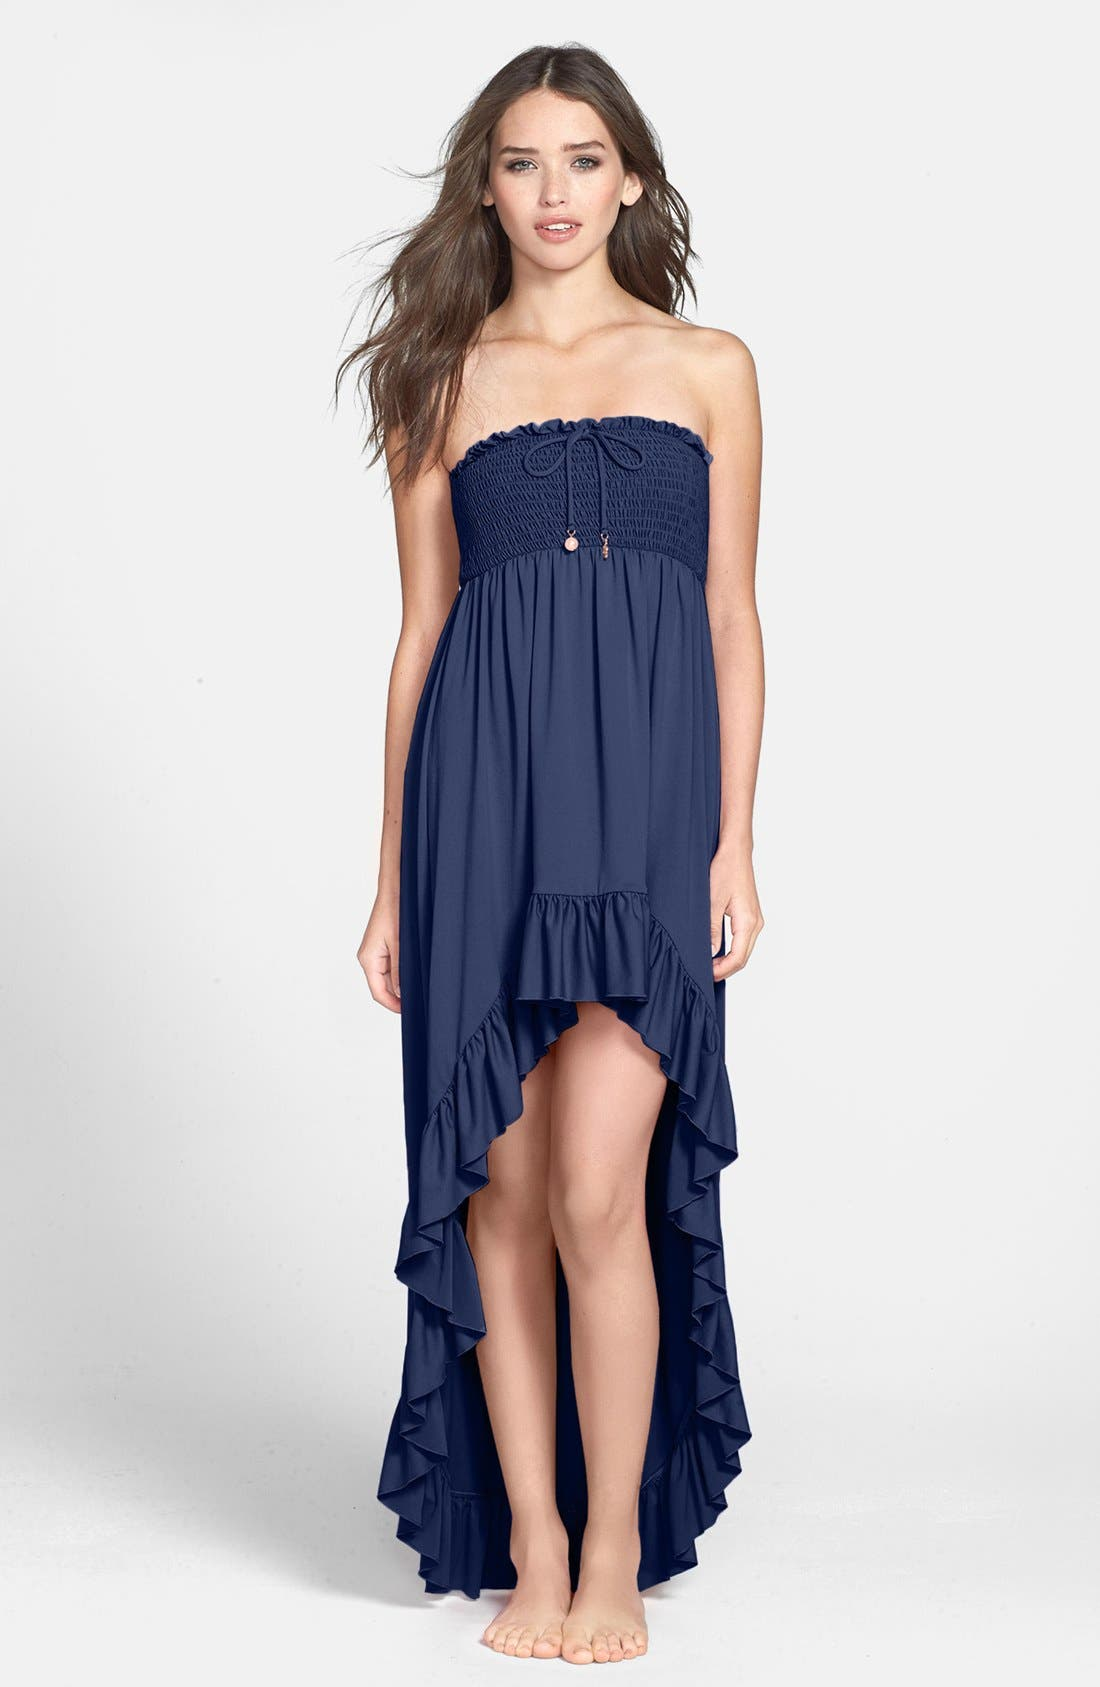 Main Image - Juicy Couture Beach 'Bow Chic' Smocked High/Low Cover-Up Dress